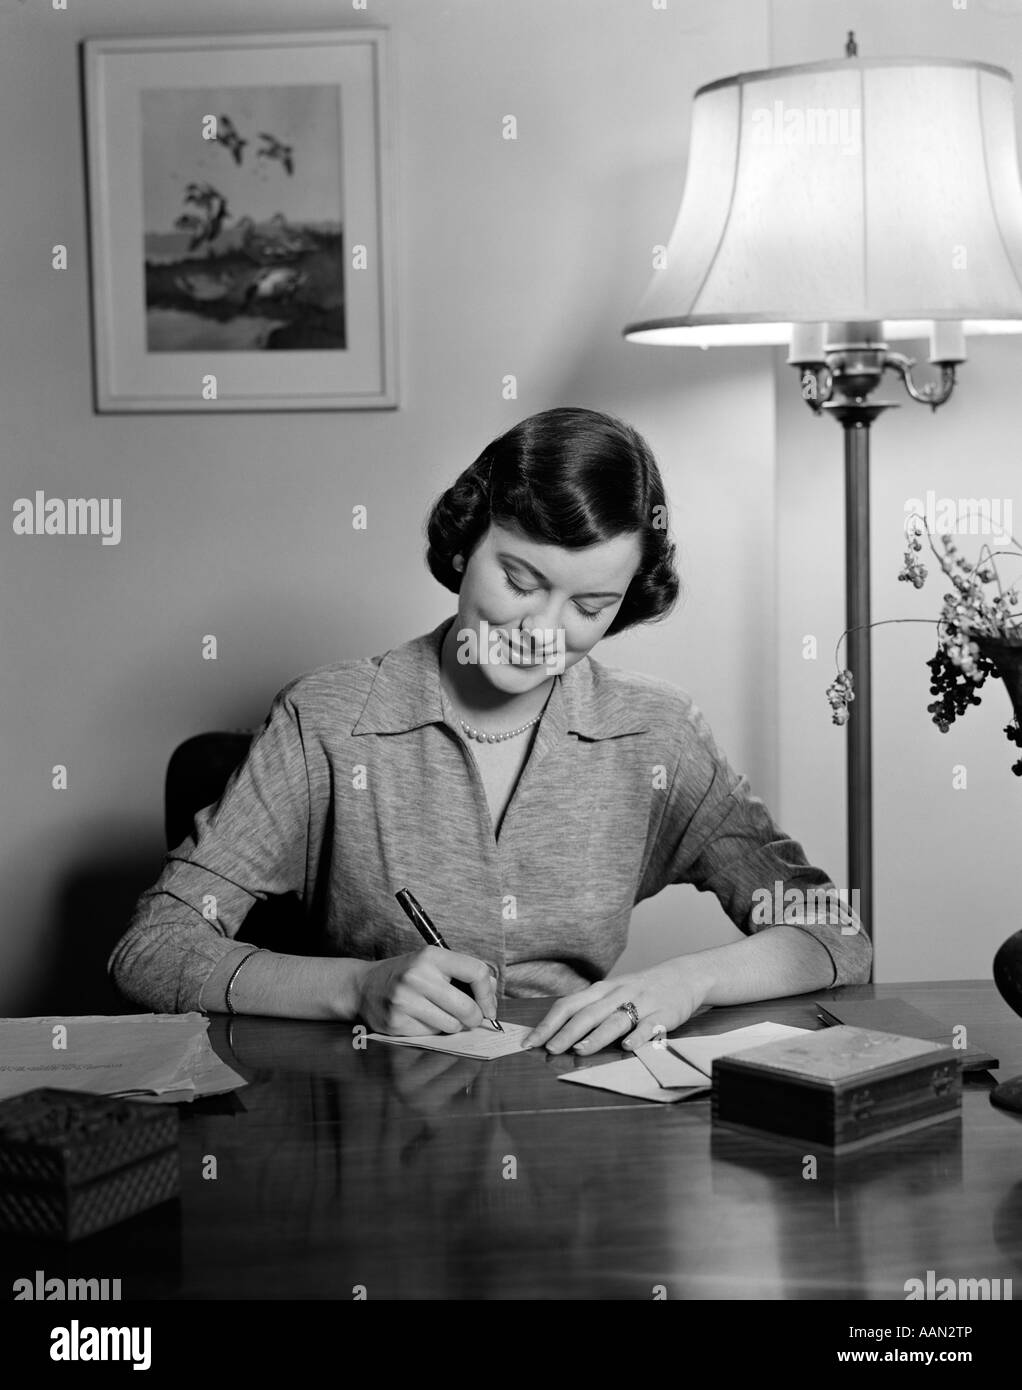 Essay 1940 S Fashion: 1940s 1950s WOMAN SITTING AT DESK WRITING LETTERS DOING